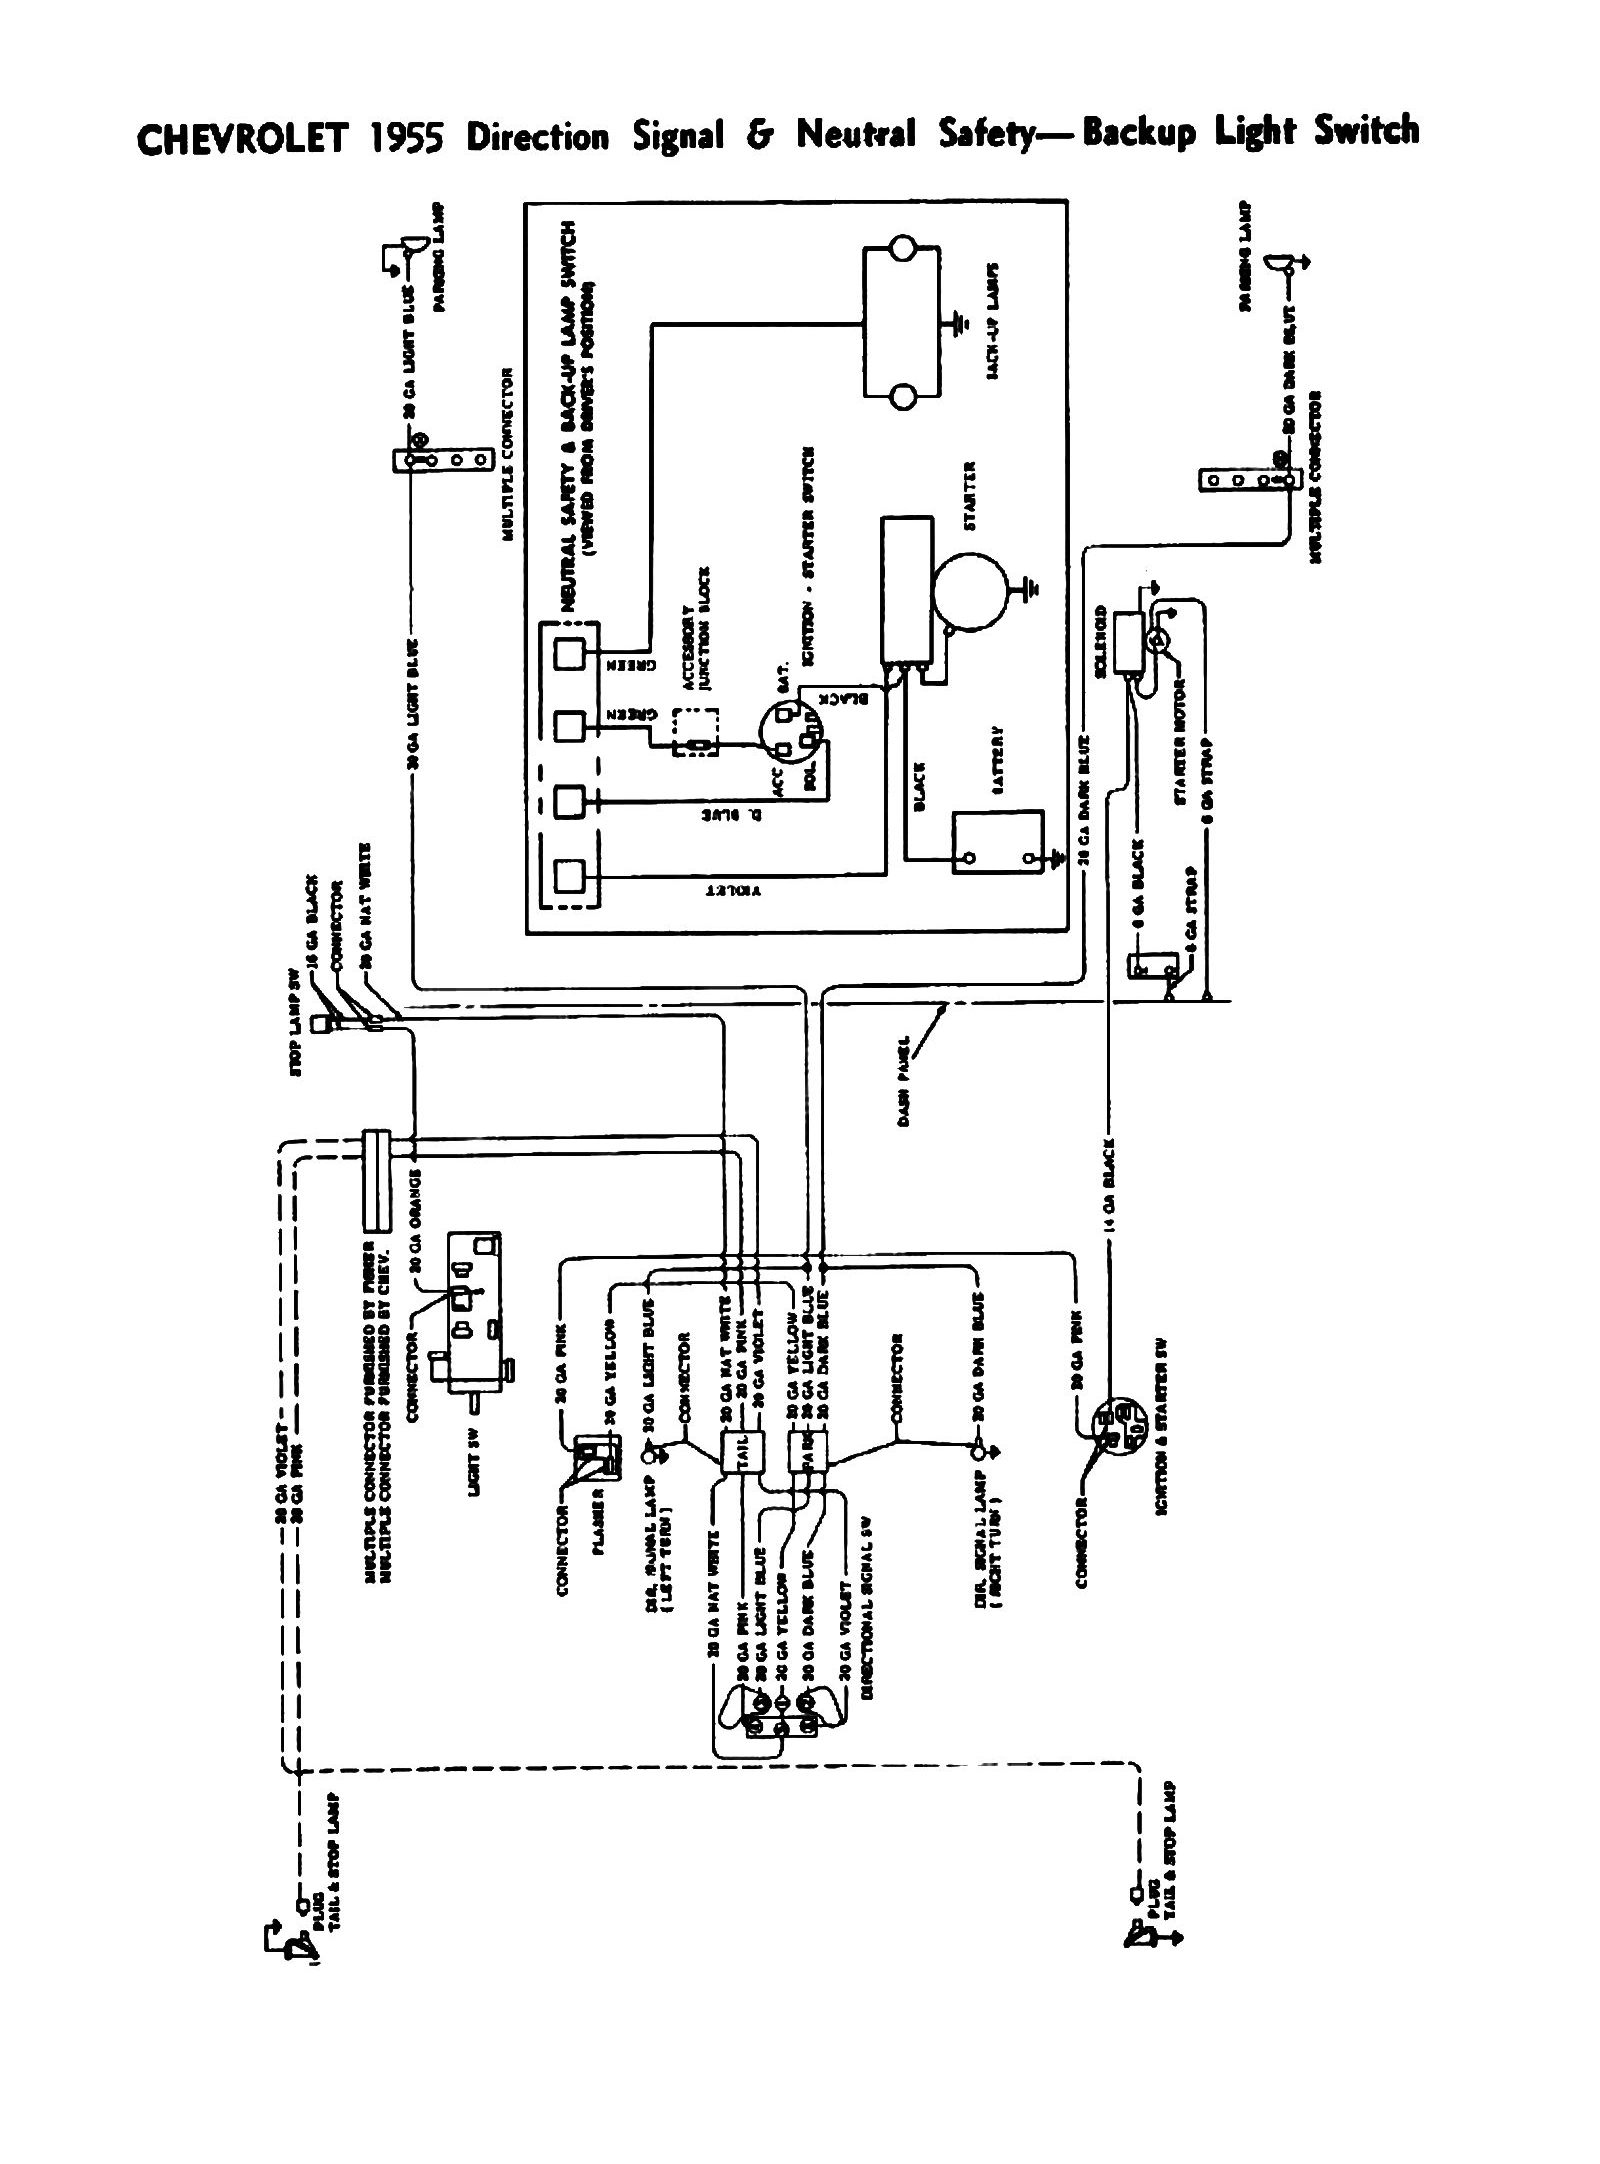 55signal chevy wiring diagrams chevy starter wiring diagram at soozxer.org